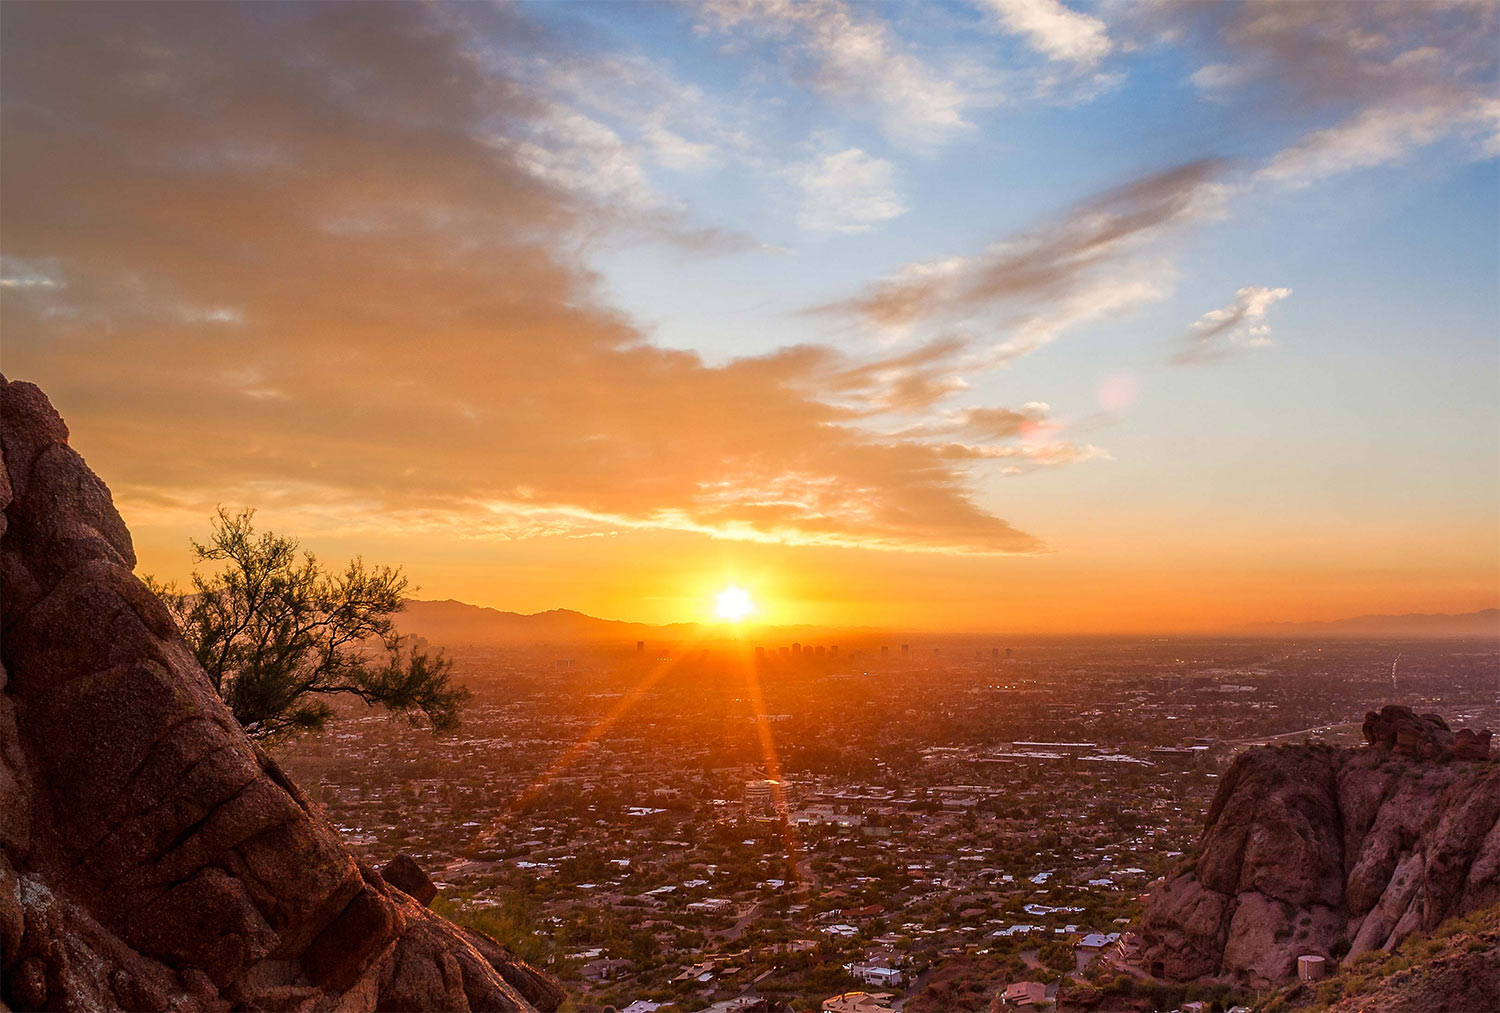 Phx-Homepage-Sunset-Burning-Over-Phoenix-Camelback-Mountain-Arizona